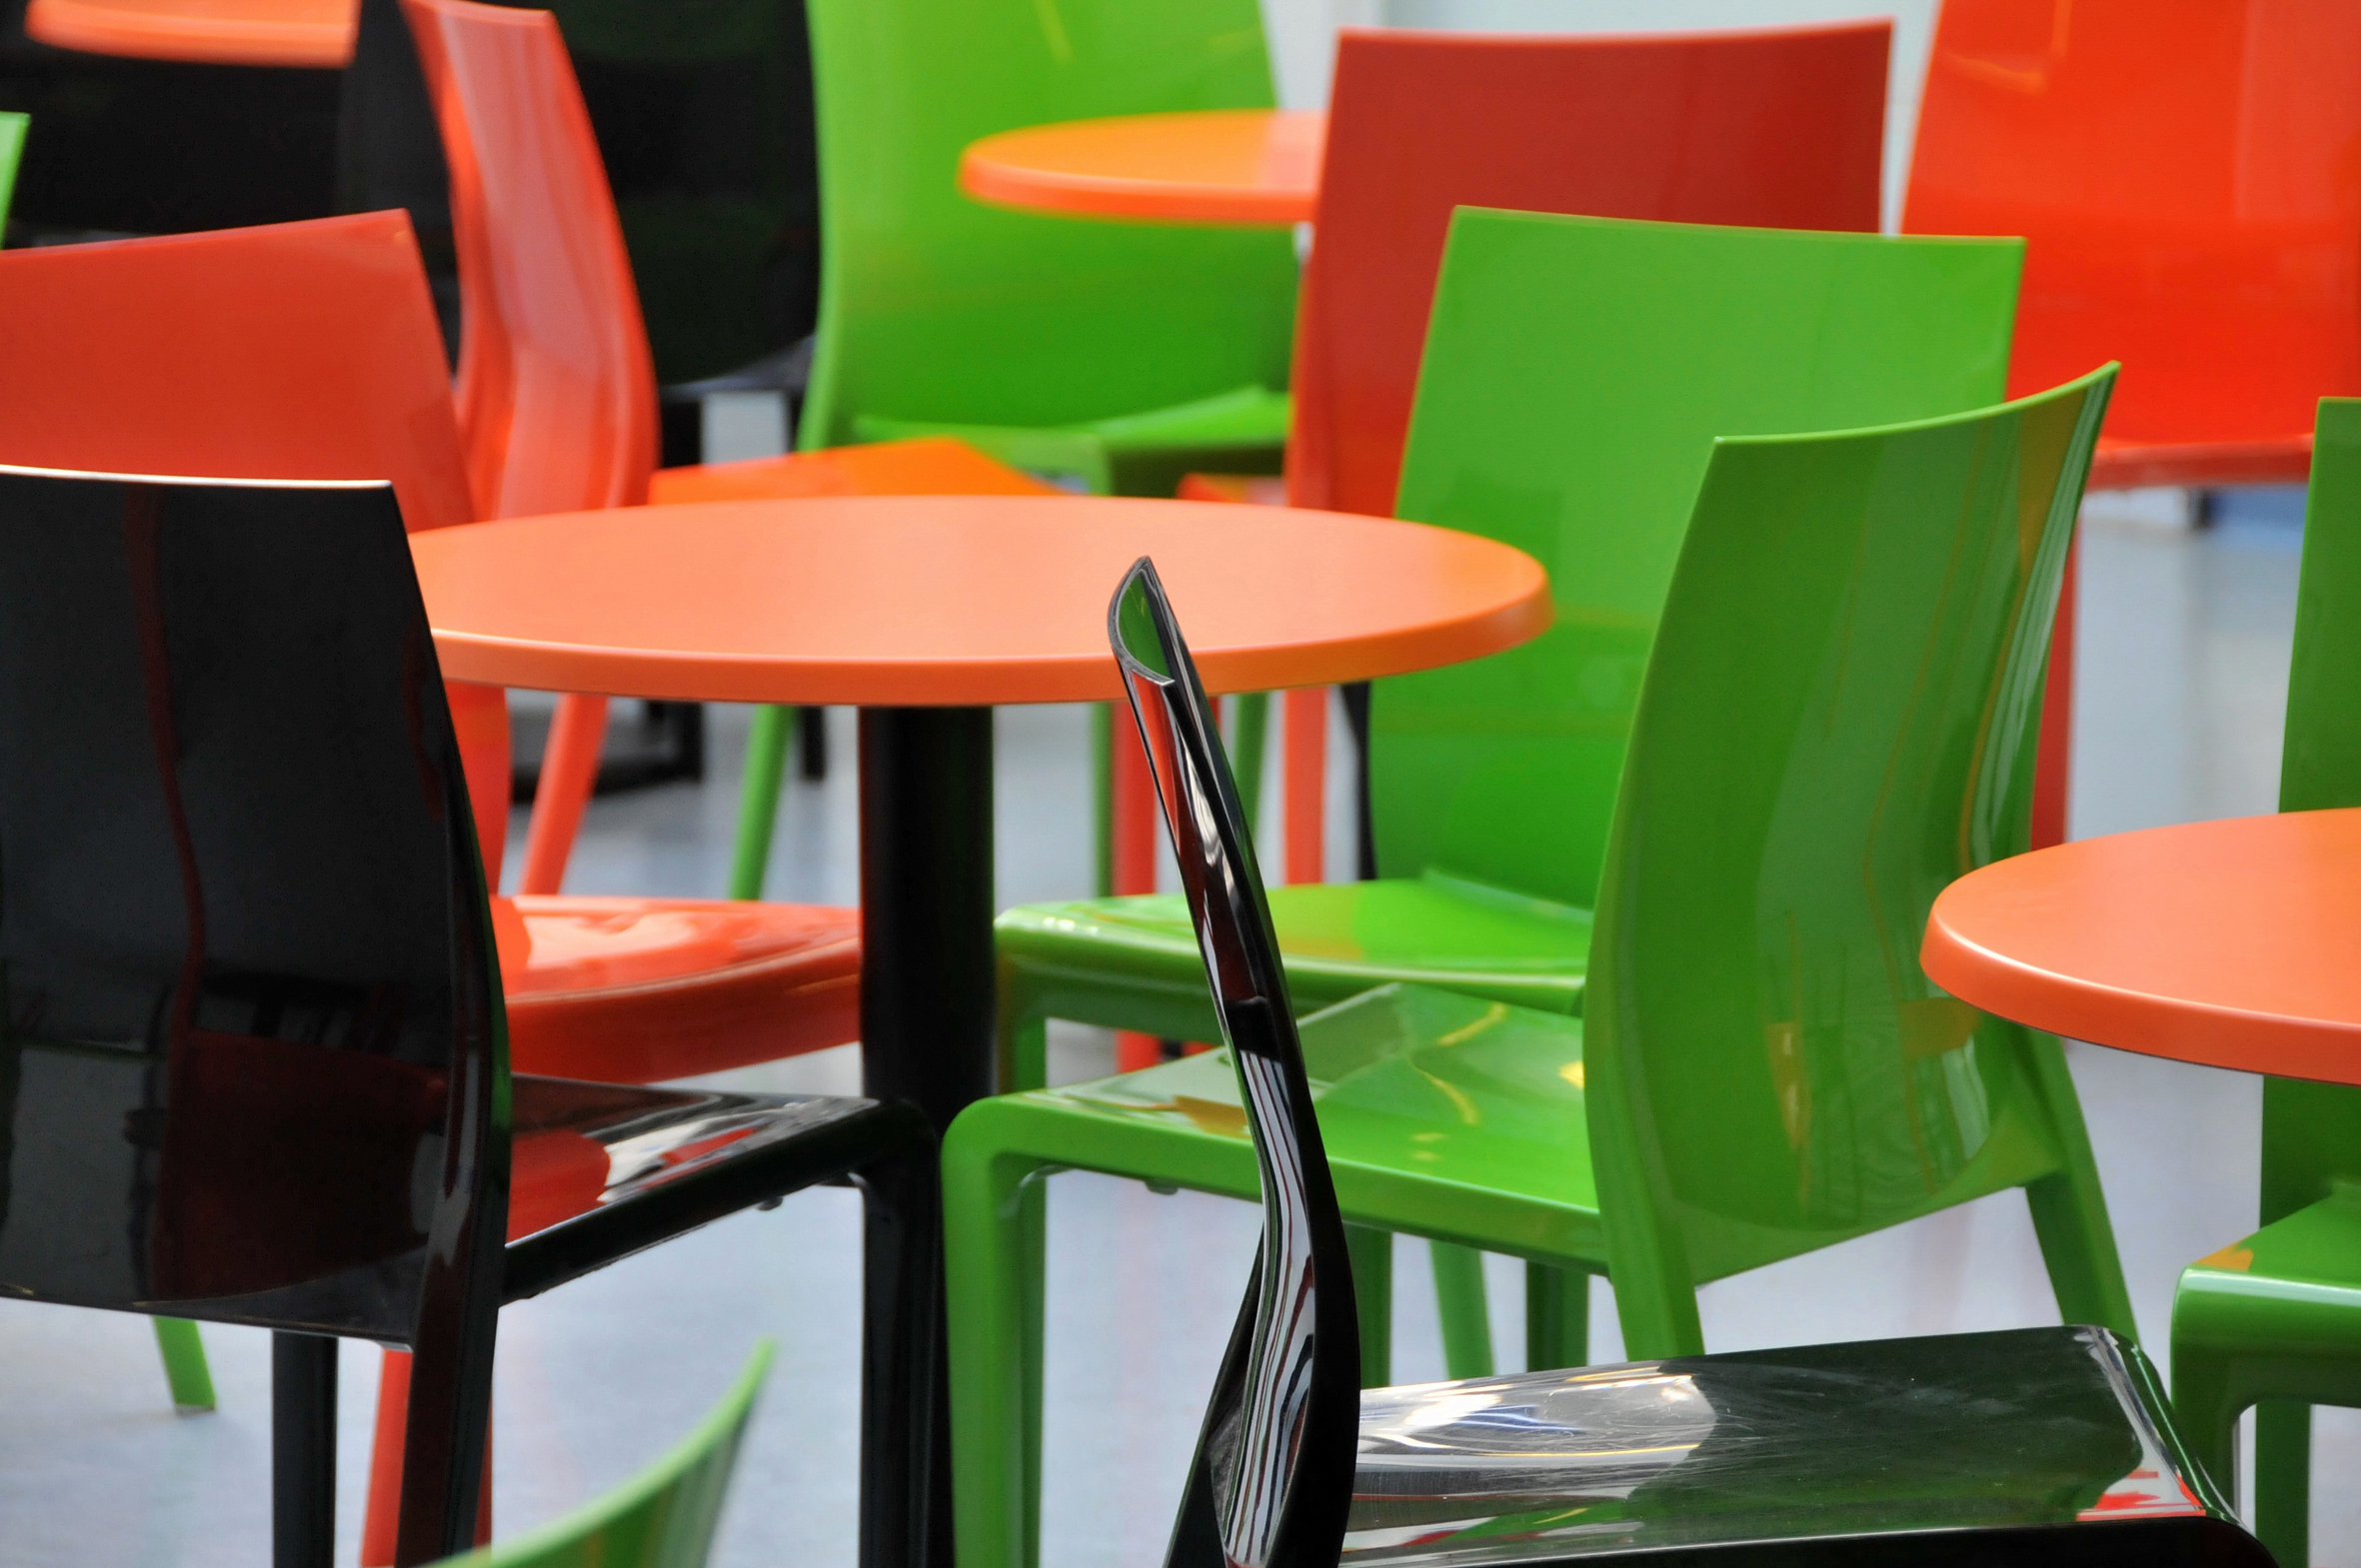 Polypropylene Or Wooden Restaurant Chairs The Pros And Cons Hillcross Furniture Blog